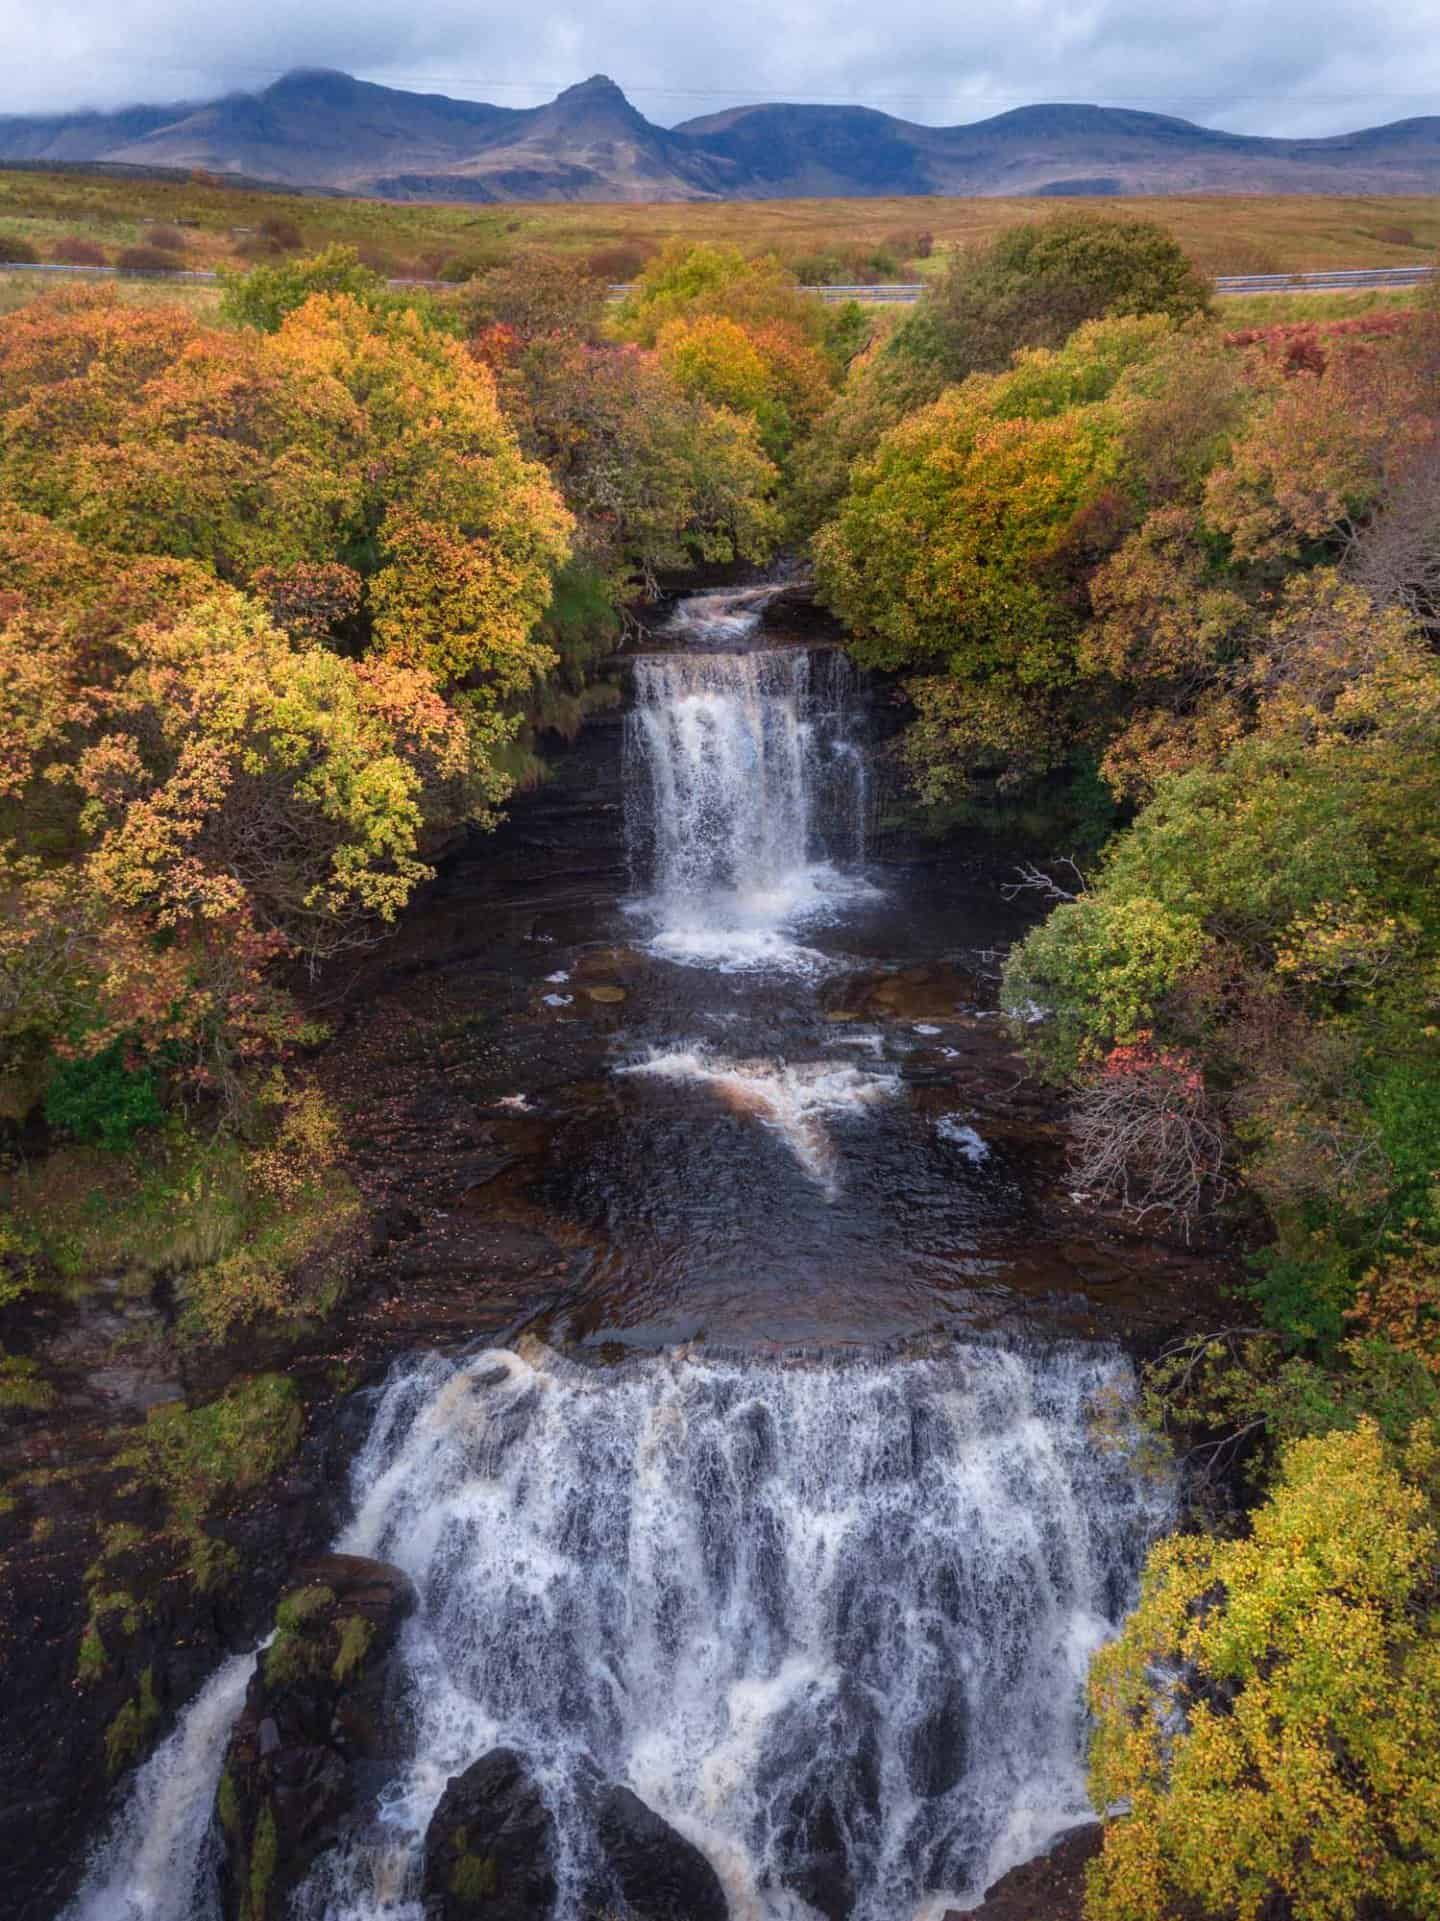 A roadside pull off on the best Scotland road trip itinerary allows access to Lealt Falls, seen tucked into the fall foliage of Isle of Skye.